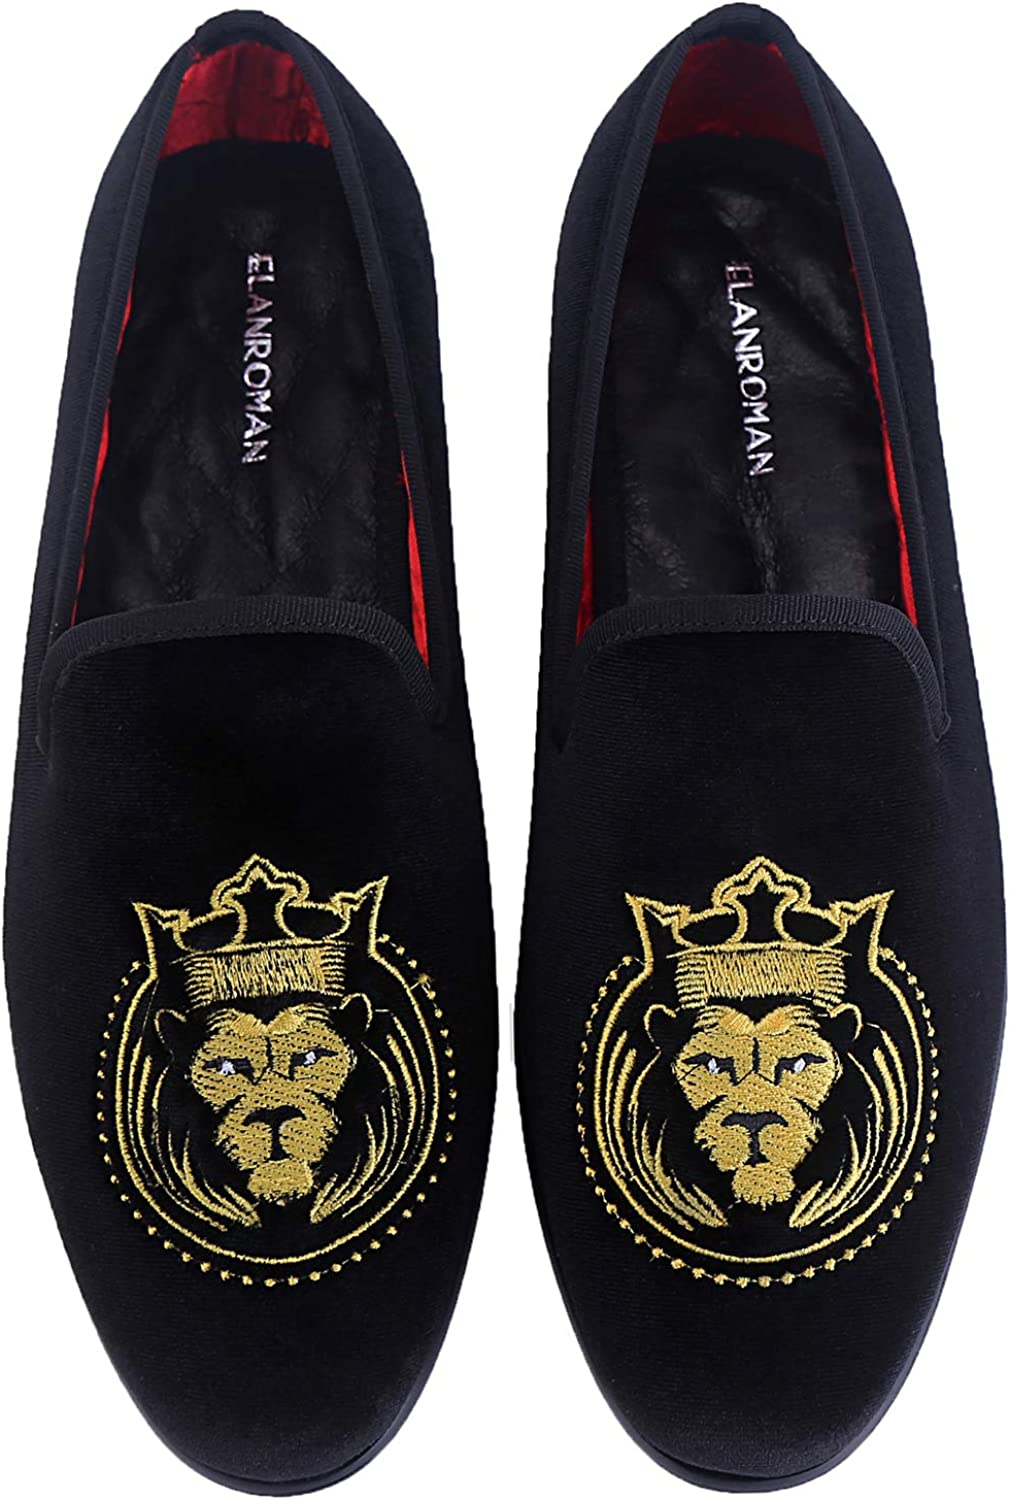 ELANROMAN Men Loafers Dress Velvet shoes with Tiger Pattern Smoking Slippers Slip on Penny Party Luxury Fashion Loafer shoes for Men